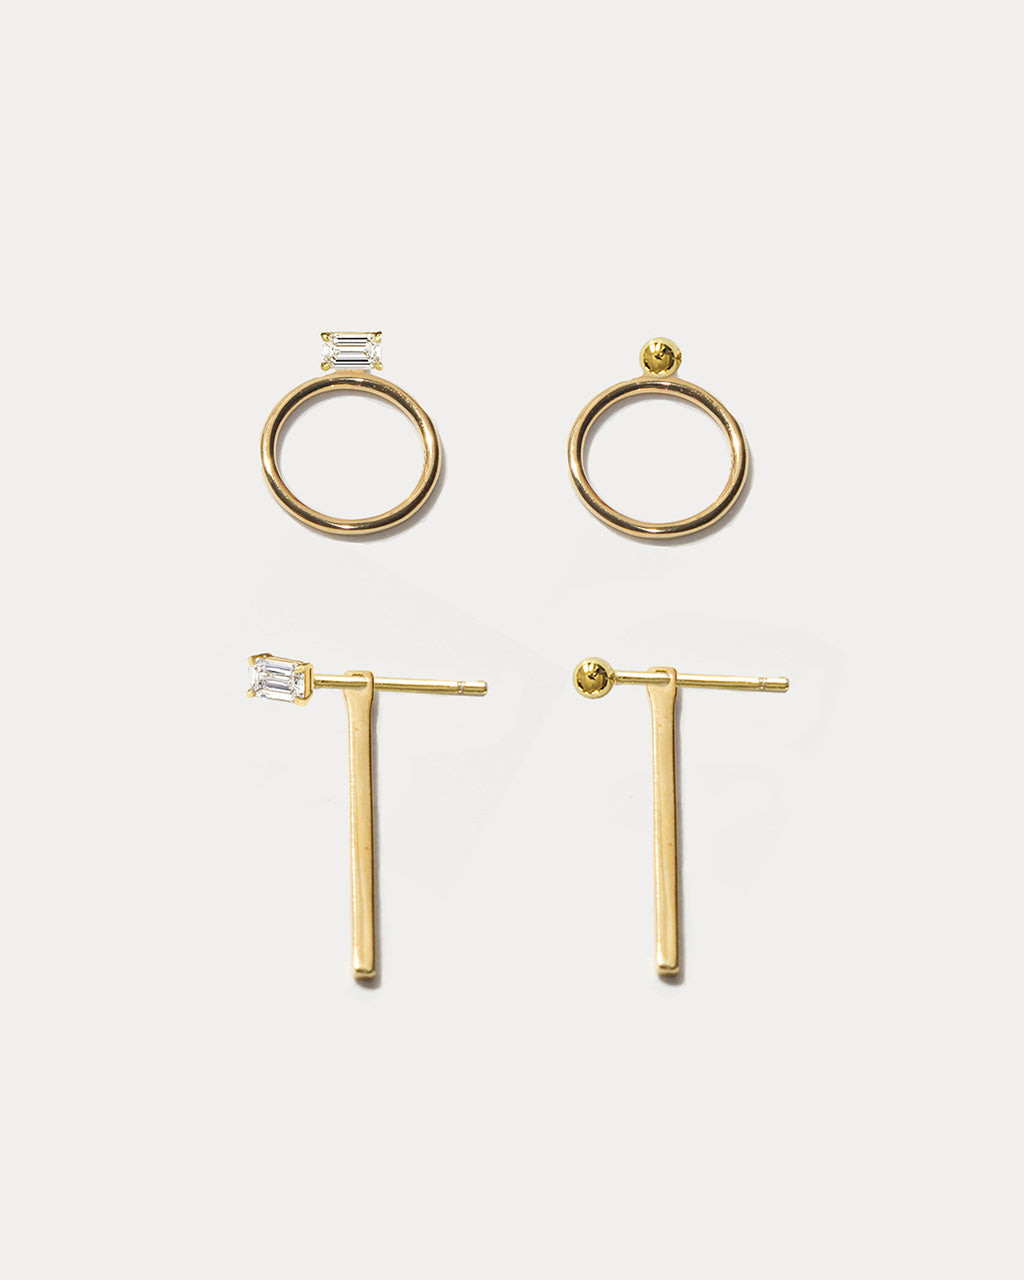 Essentials I - Earring Capsule Quad Set